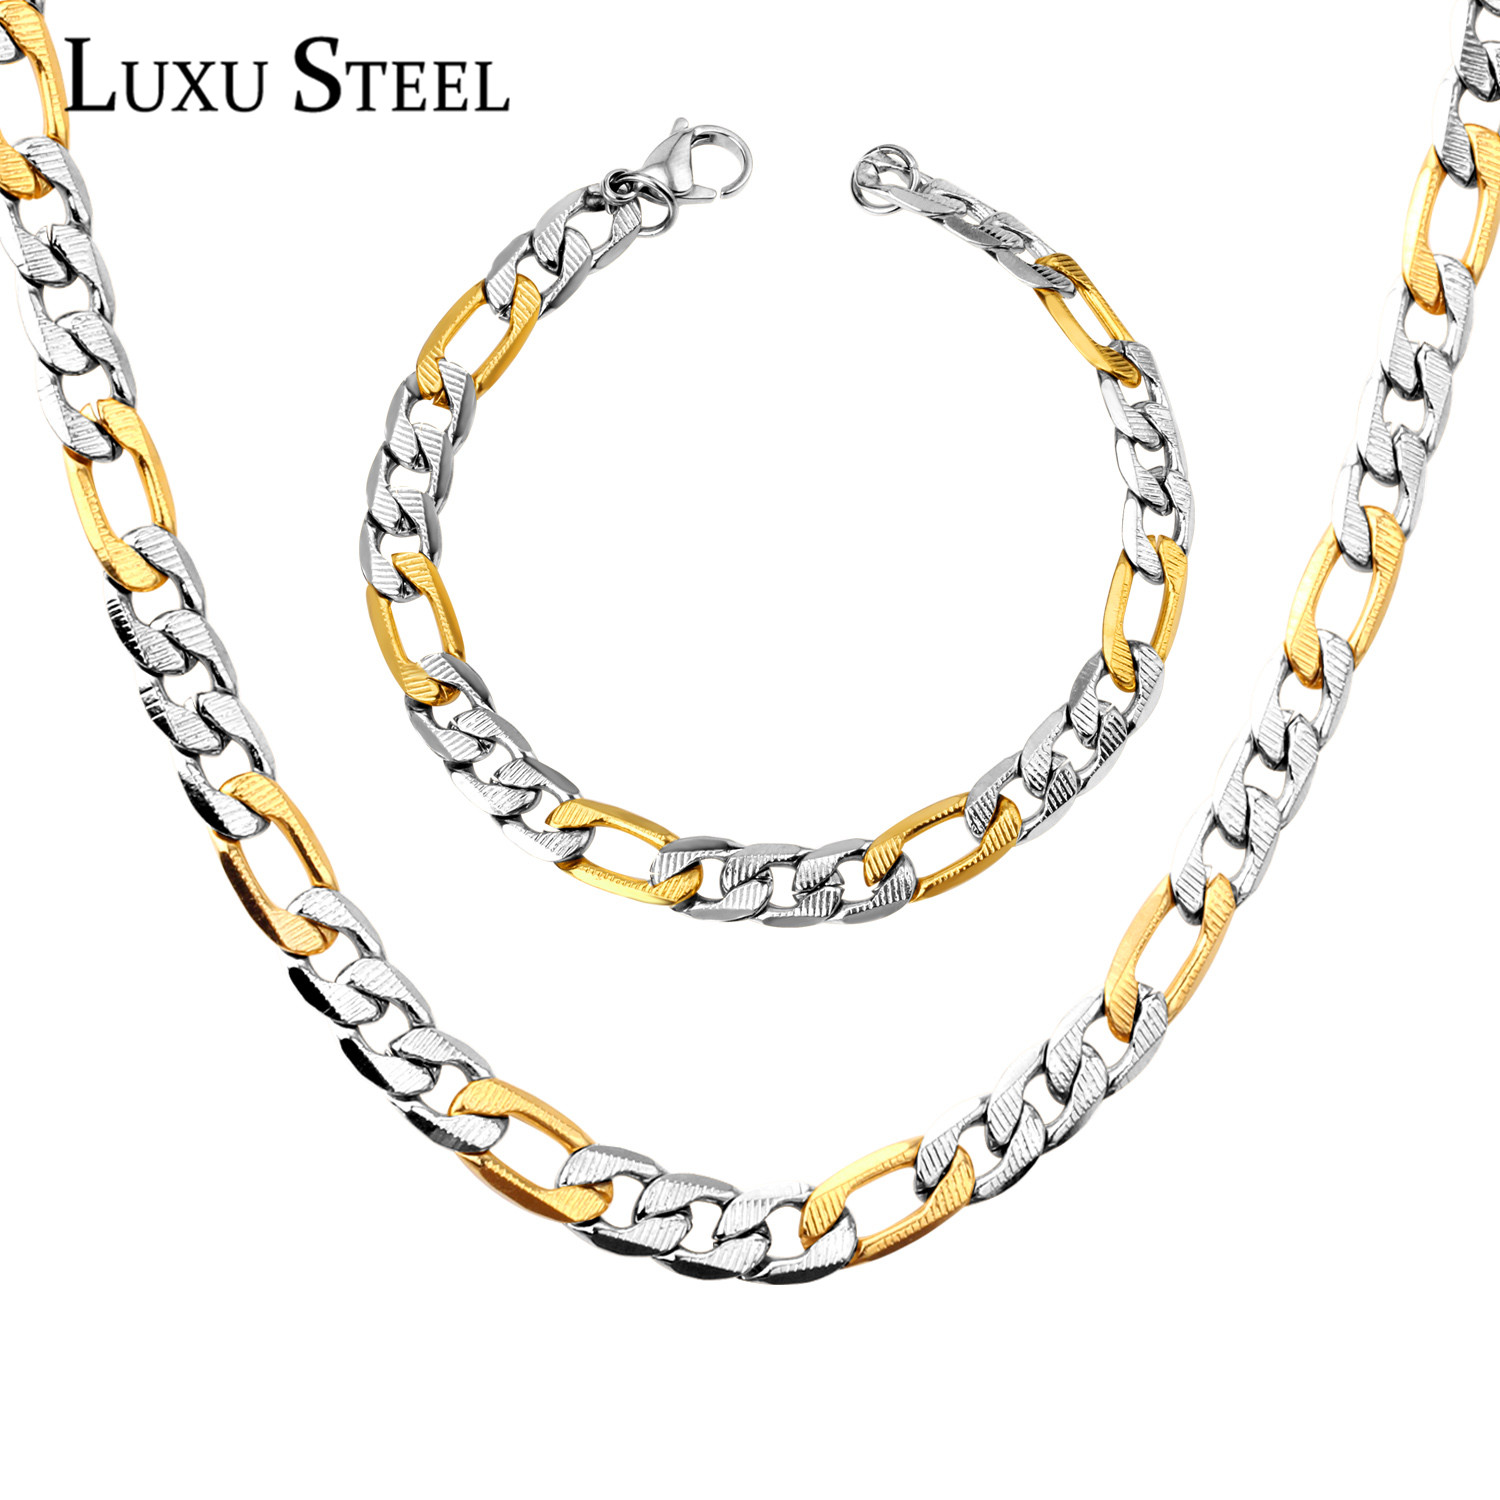 LUXUSTEEL Fashion Men's Jewelry Sets Stainless Steel Gold Color Curb Chain Necklace Bracelet Wholesale Jewelry